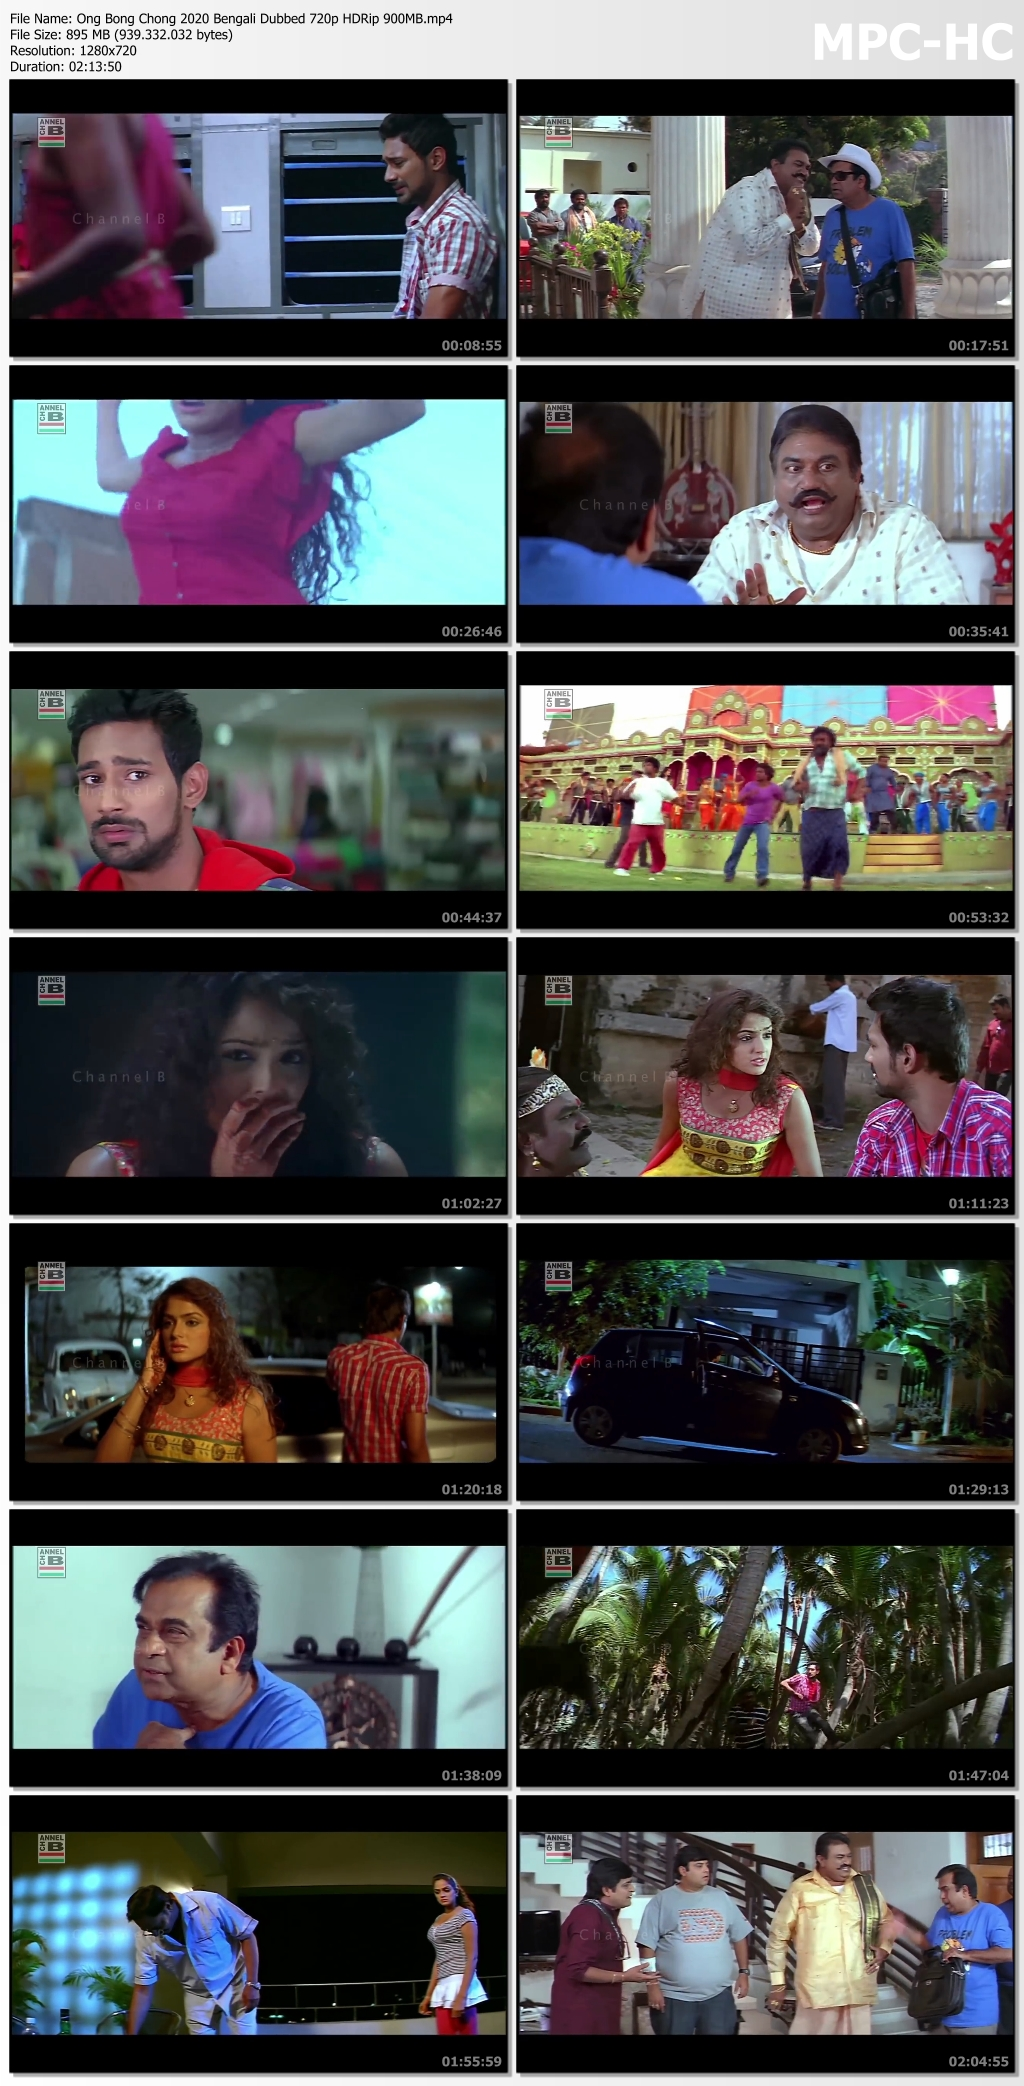 Ong-Bong-Chong-2020-Bengali-Dubbed-720p-HDRip-900-MB-mp4-thumbs